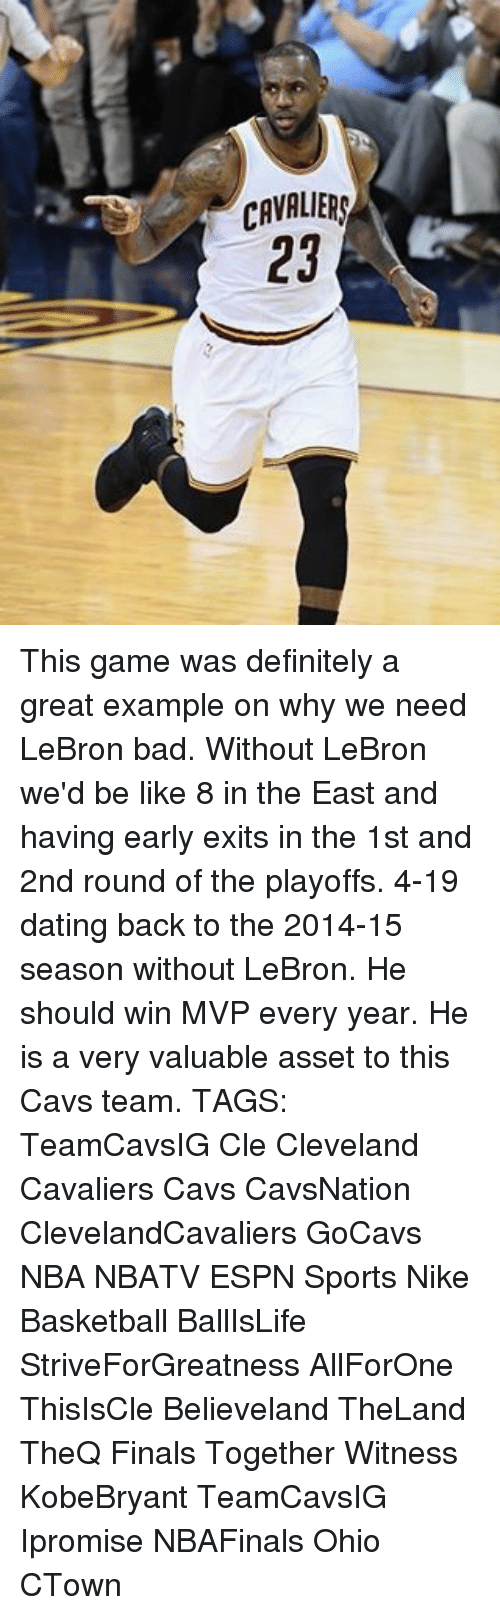 Espn, Memes, and Nike: CAVALIERS  23 This game was definitely a great example on why we need LeBron bad. Without LeBron we'd be like 8 in the East and having early exits in the 1st and 2nd round of the playoffs. 4-19 dating back to the 2014-15 season without LeBron. He should win MVP every year. He is a very valuable asset to this Cavs team. TAGS: TeamCavsIG Cle Cleveland Cavaliers Cavs CavsNation ClevelandCavaliers GoCavs NBA NBATV ESPN Sports Nike Basketball BallIsLife StriveForGreatness AllForOne ThisIsCle Believeland TheLand TheQ Finals Together Witness KobeBryant TeamCavsIG Ipromise NBAFinals Ohio CTown